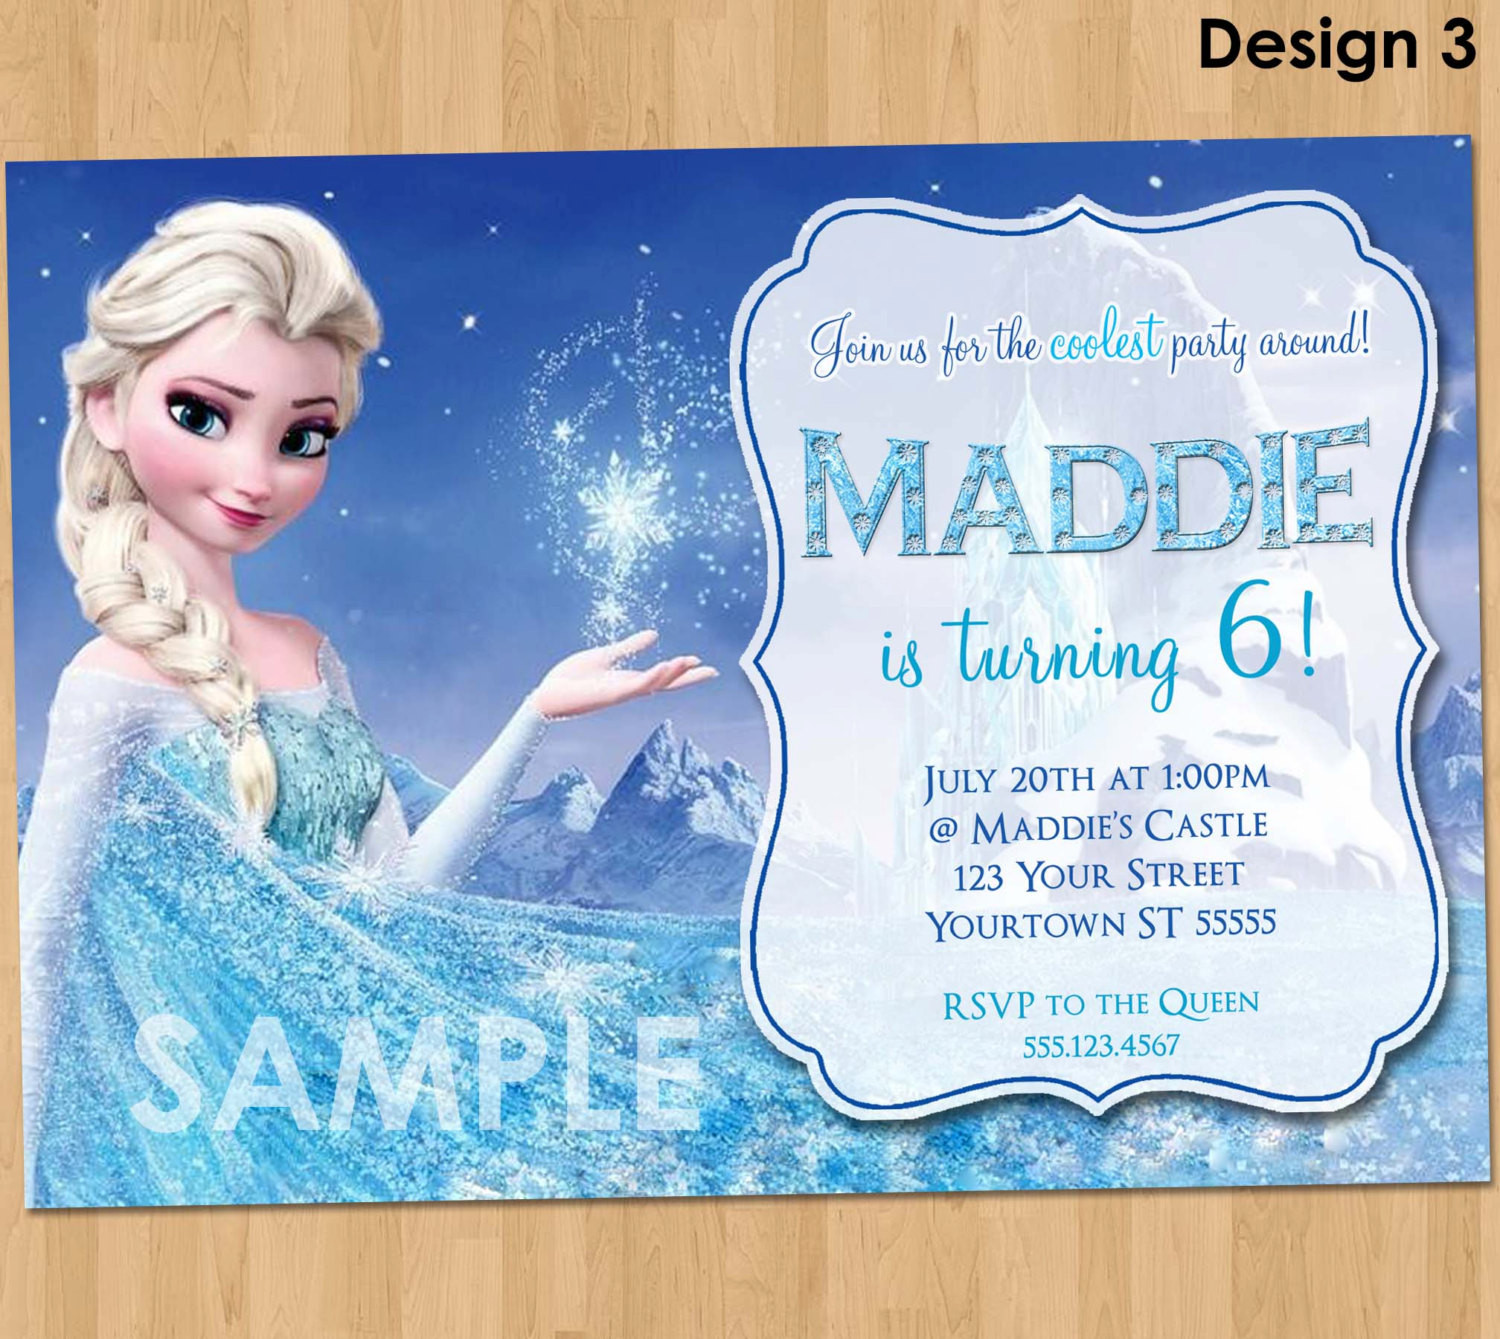 Best ideas about Frozen Birthday Party Invitations . Save or Pin Frozen Birthday Invitation Elsa Frozen Invitation Now.